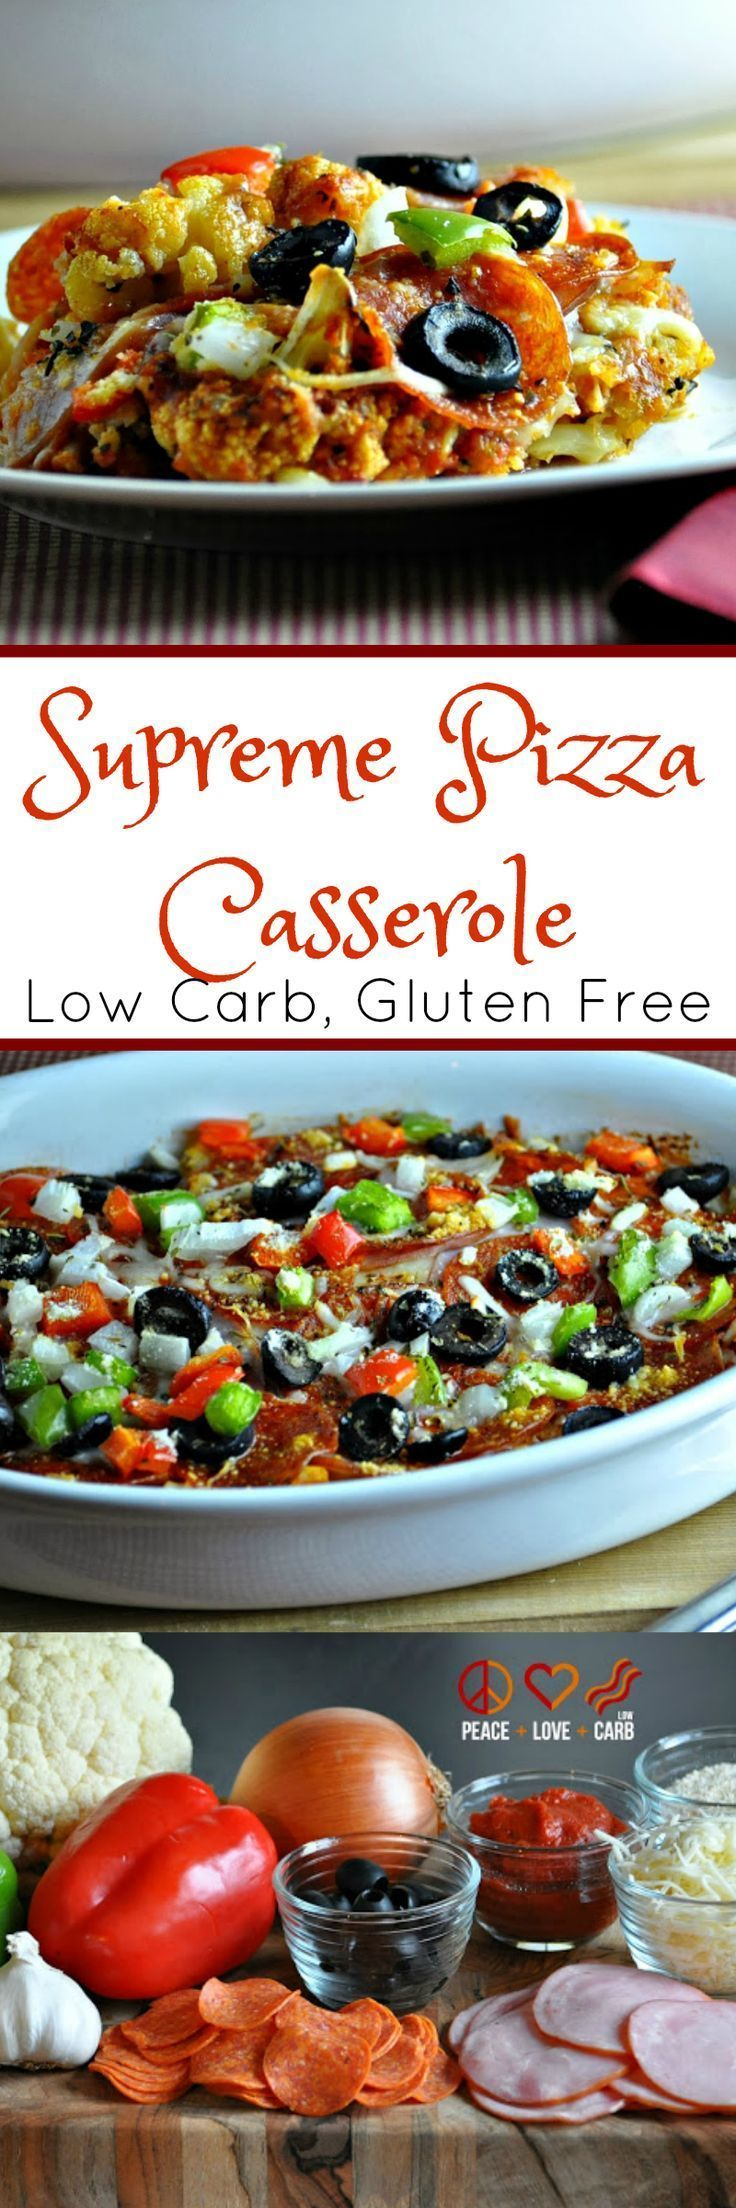 Supreme Pizza Cauliflower Casserole - Low Carb, Gluten Free - this keto friendly pizza is full of delicious tasting ingredients.   Peace Love and Low Carb